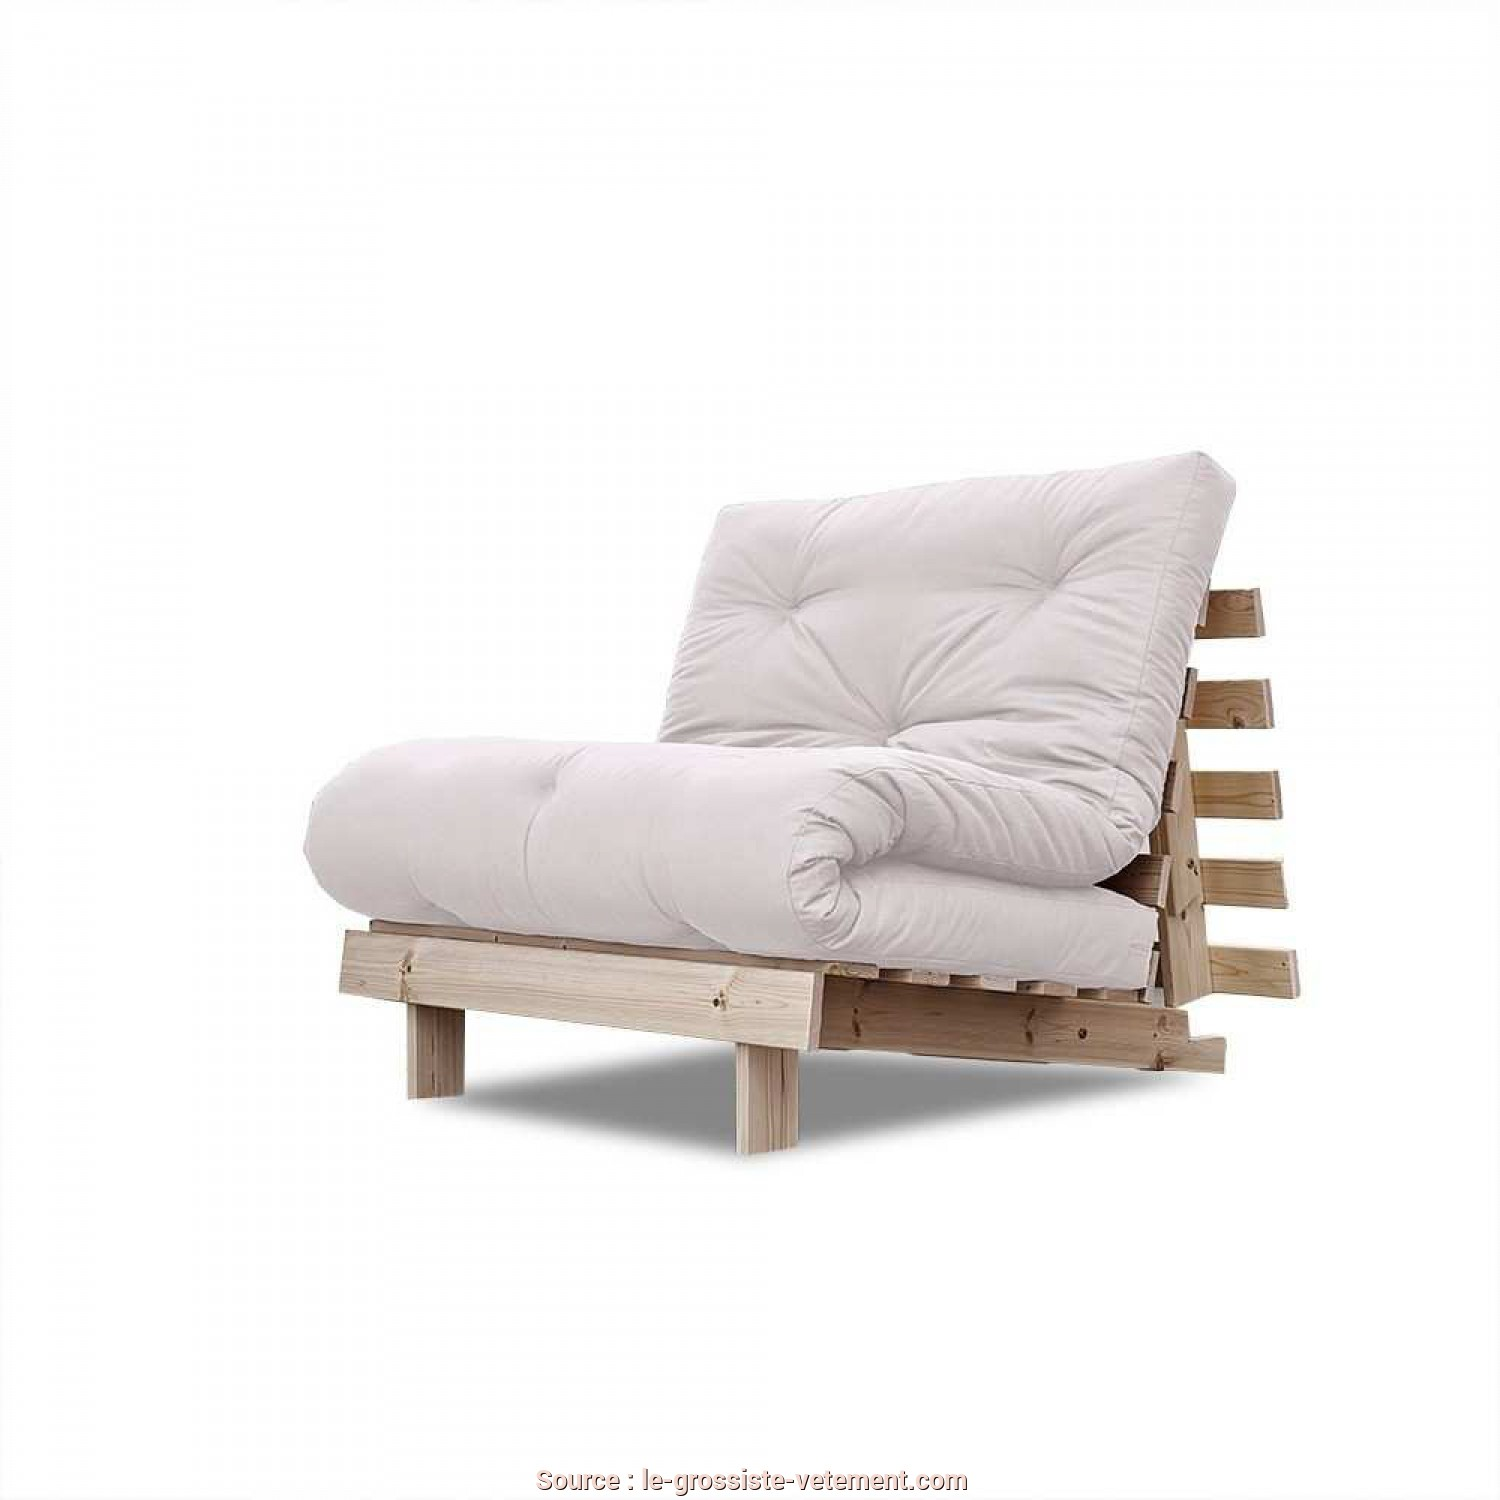 Futon 1 Place Ikea, Sbalorditivo Futon 1 Place Ikea Image Hd, DecorationdeSalon